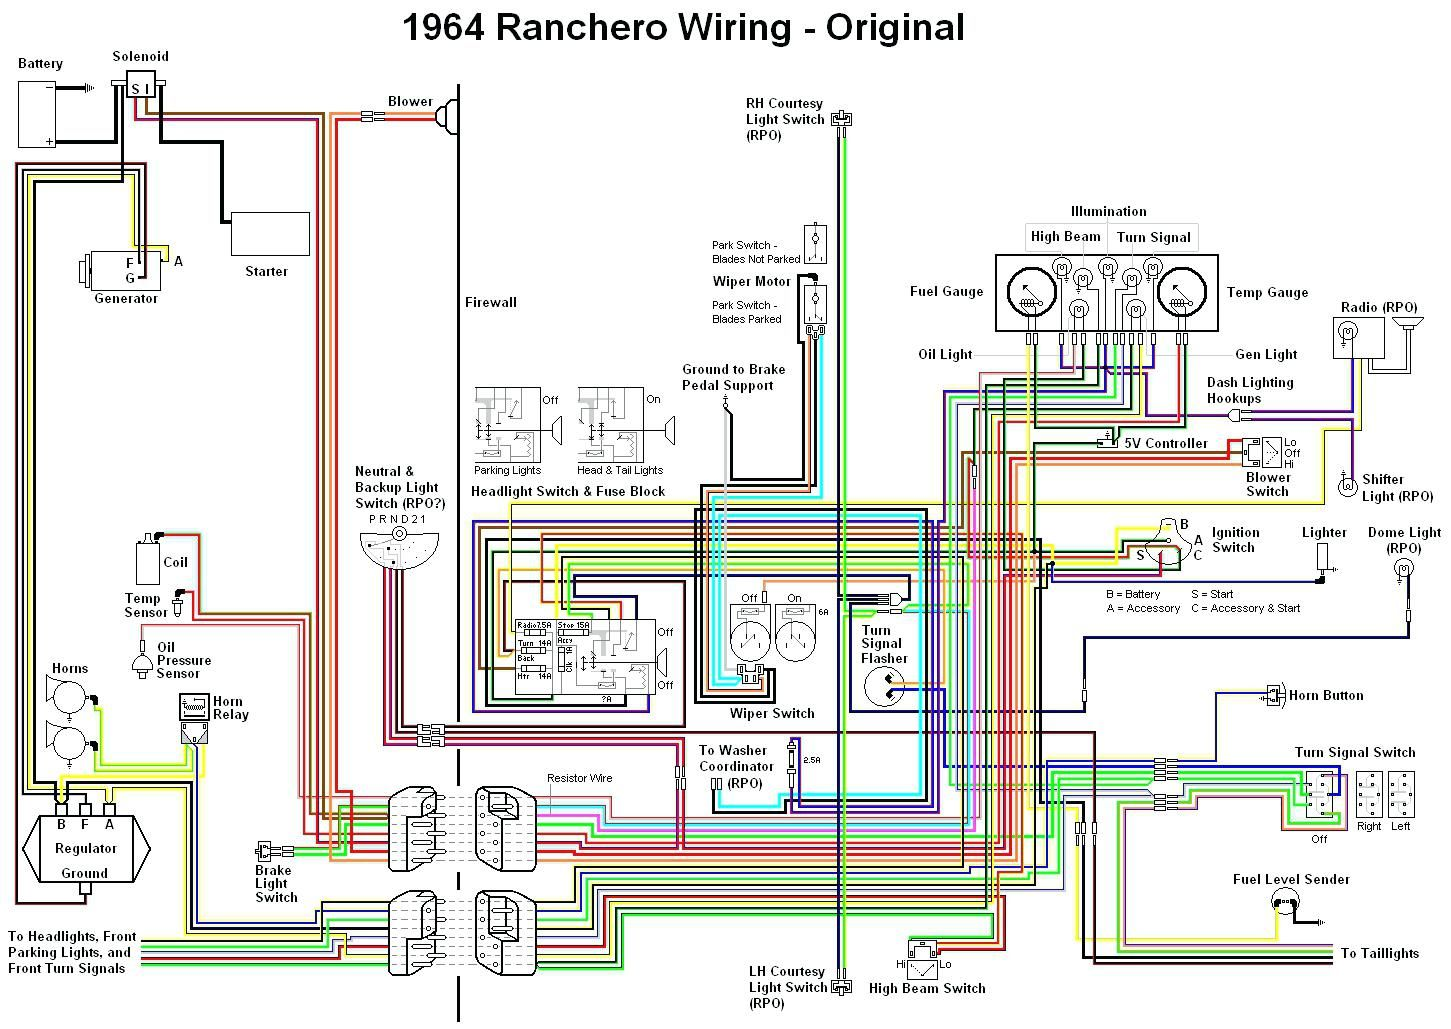 Tvs Apache 150 Wiring Diagram Free Download Diagrams Schematics With |  Trailer wiring diagram, Motorcycle wiring, Diagram | Tvs Motorcycle Wiring Diagram |  | Pinterest